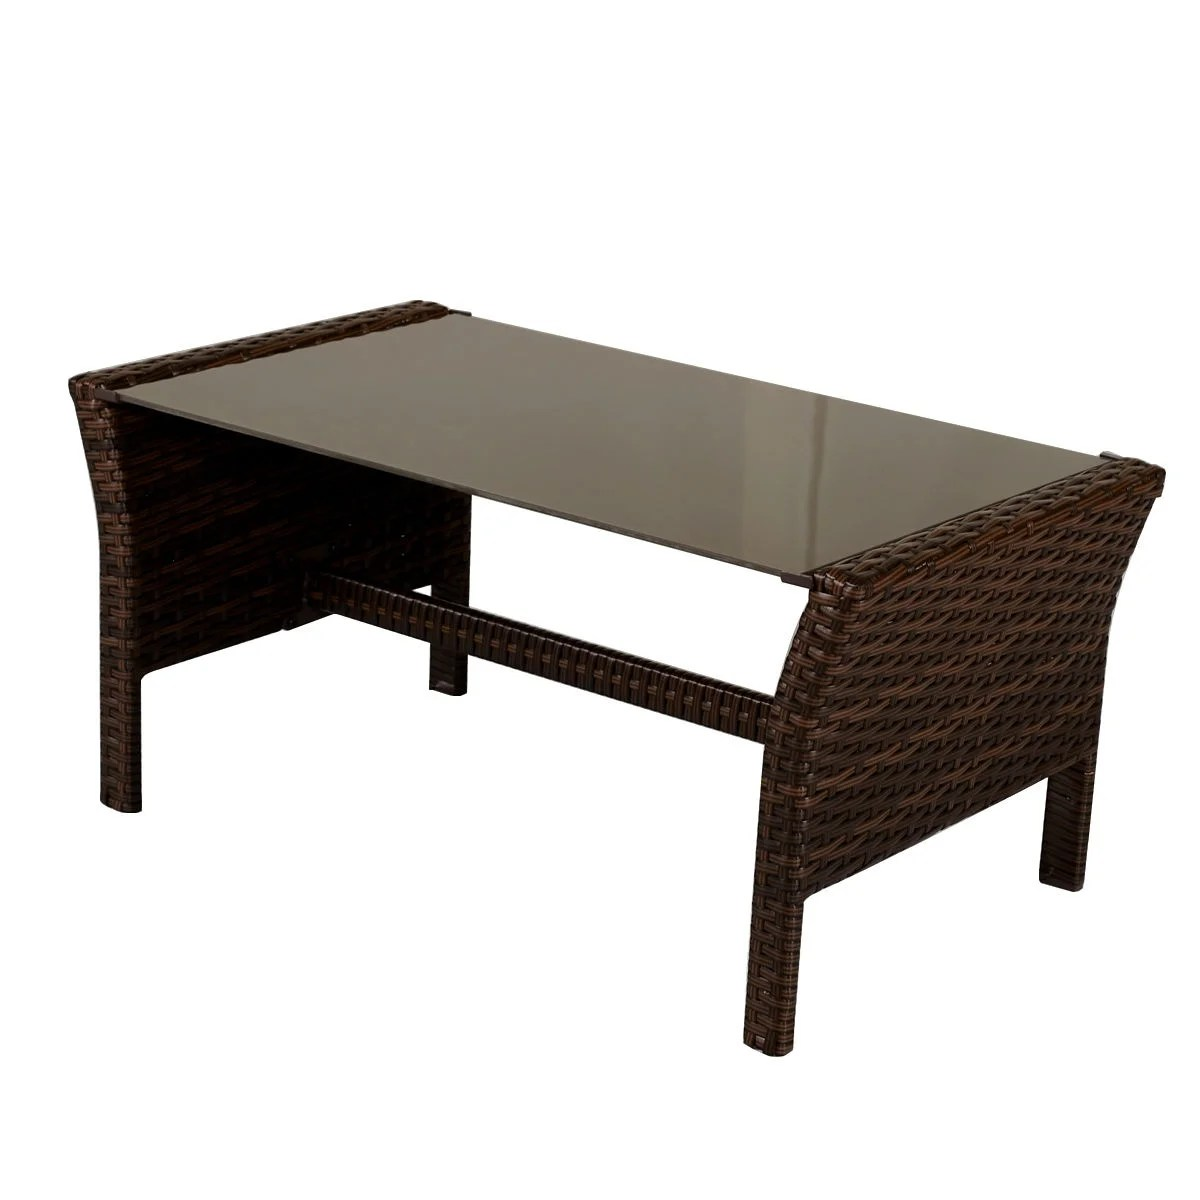 Rattan Table Costway 4 Pieces Patio Furniture Wicker Rattan Sofa Set Garden Coffee Table As Pic